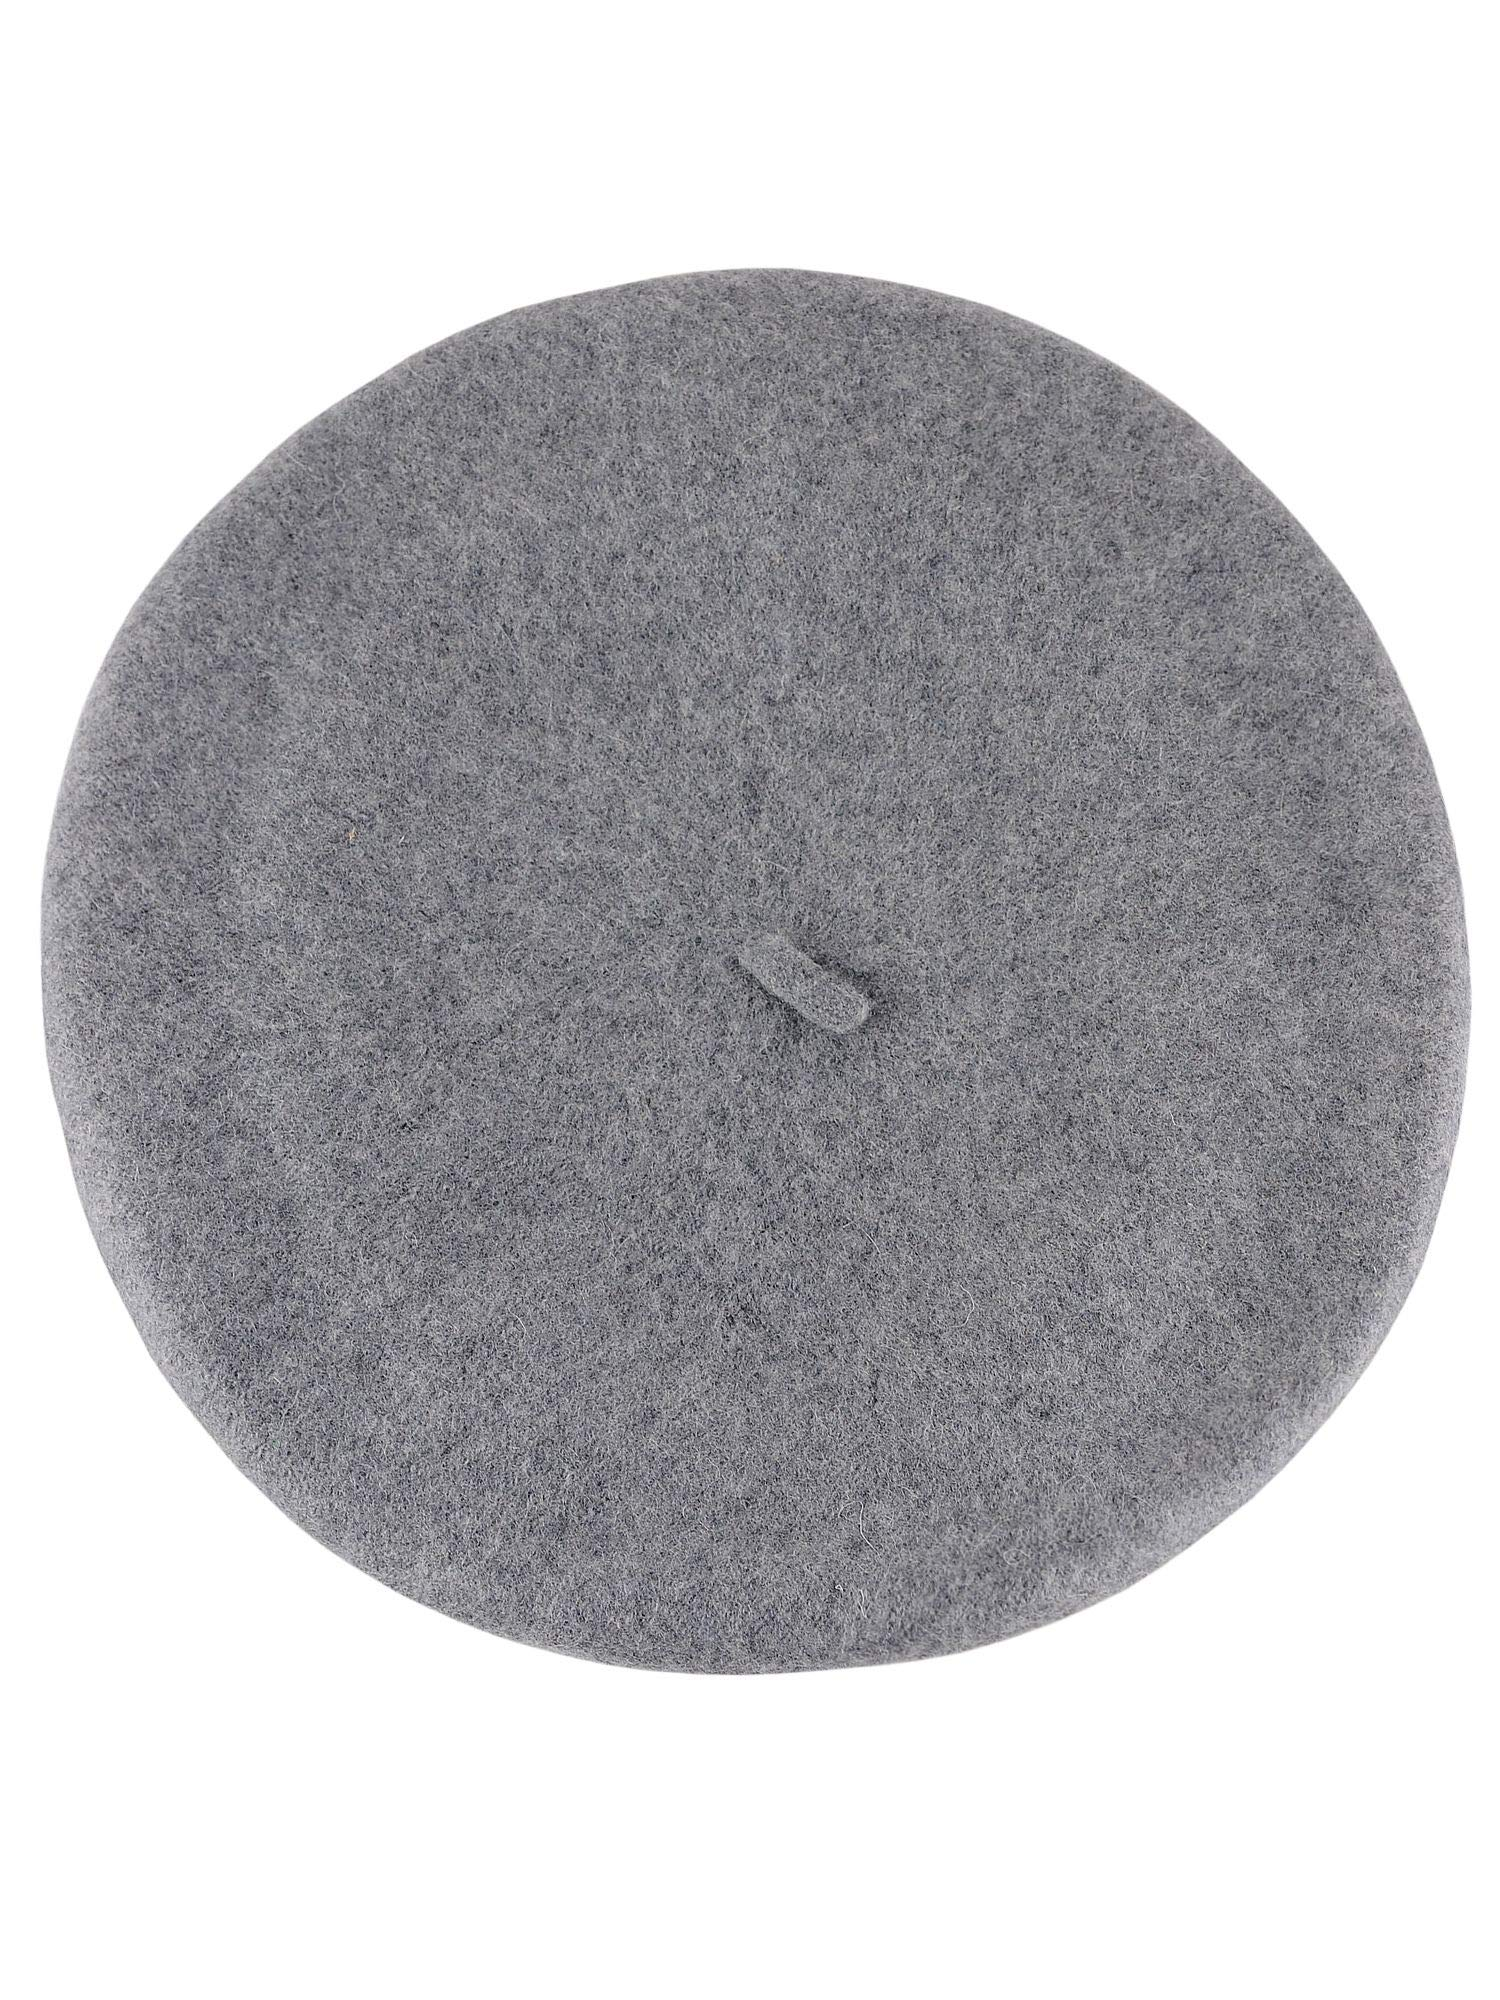 NYFASHION101 French Style Lightweight Casual Classic Solid Color Wool Beret, Ash Gray